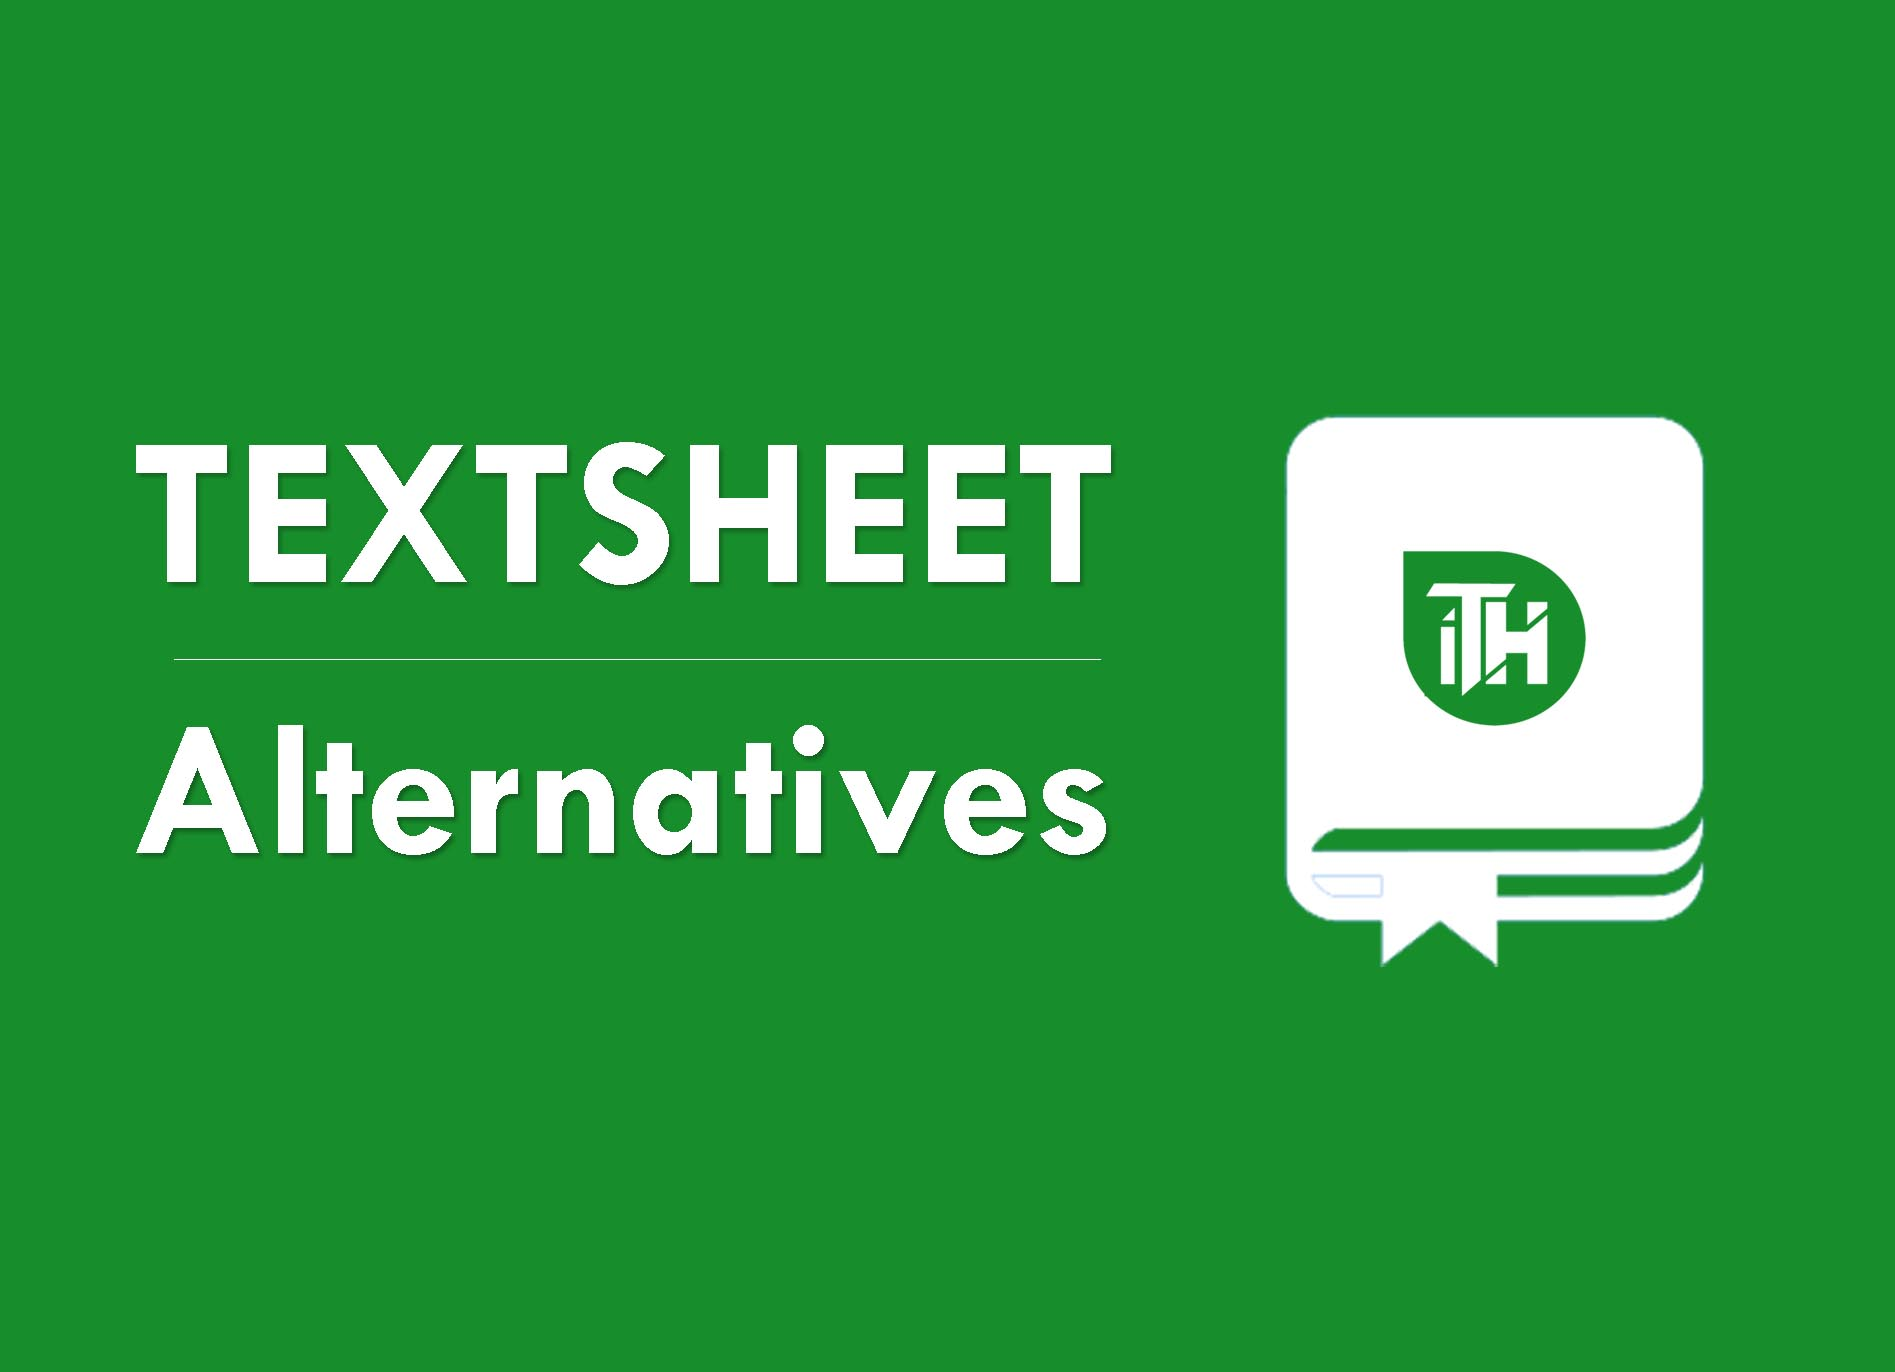 Top 5 Best Textsheet Alternatives For Students/Collegeious 2019